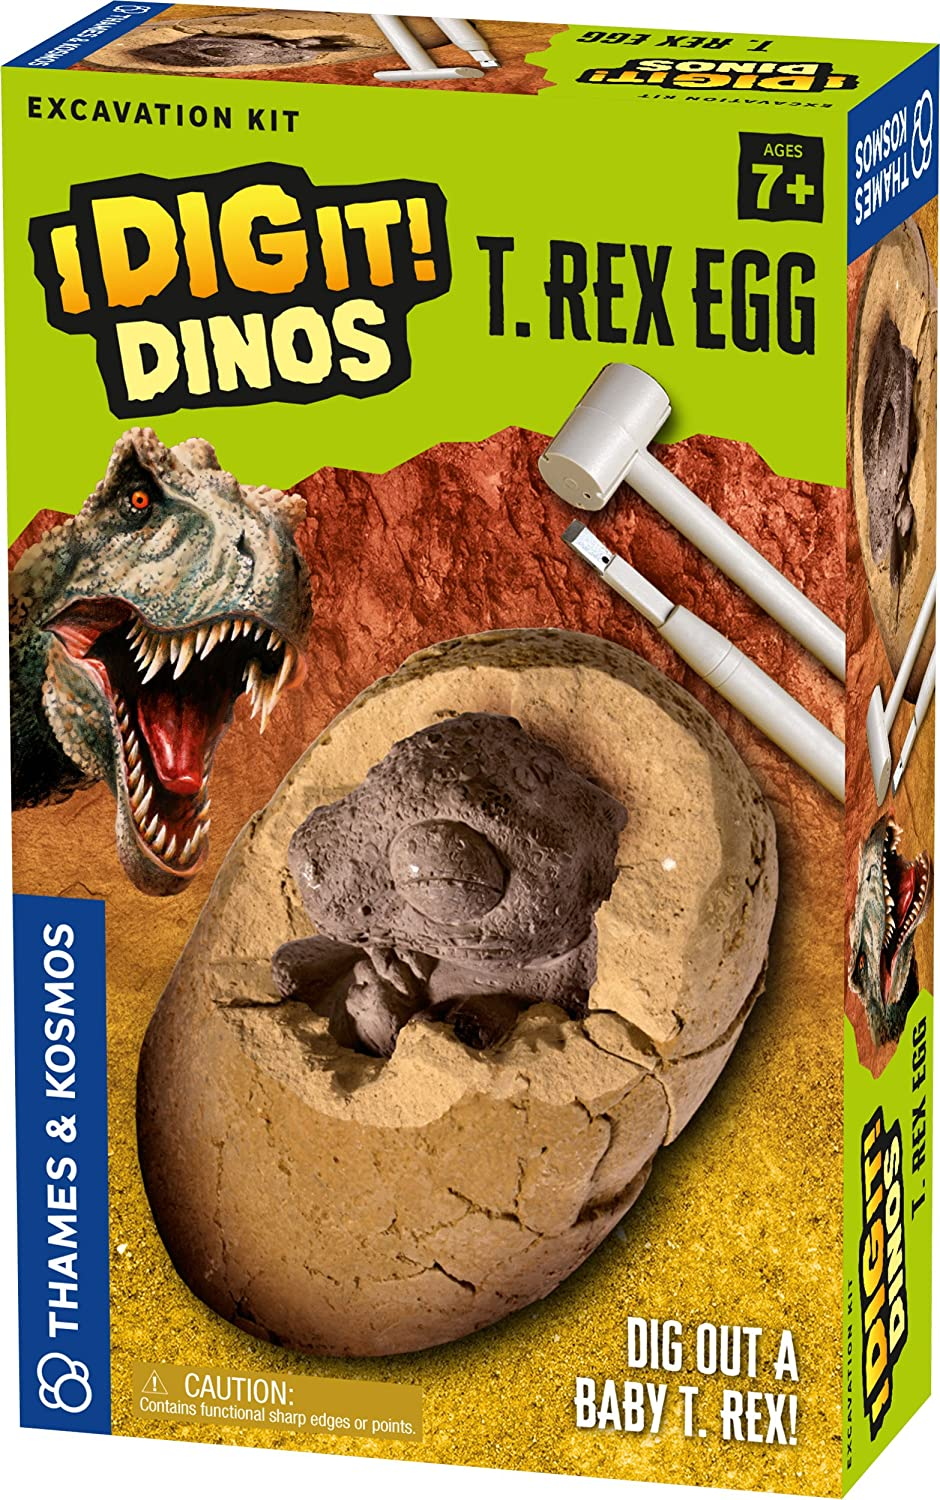 Thames & Kosmos I Dig It Dinos-T. Rex Egg Excavation Kit Science Experiment 630065